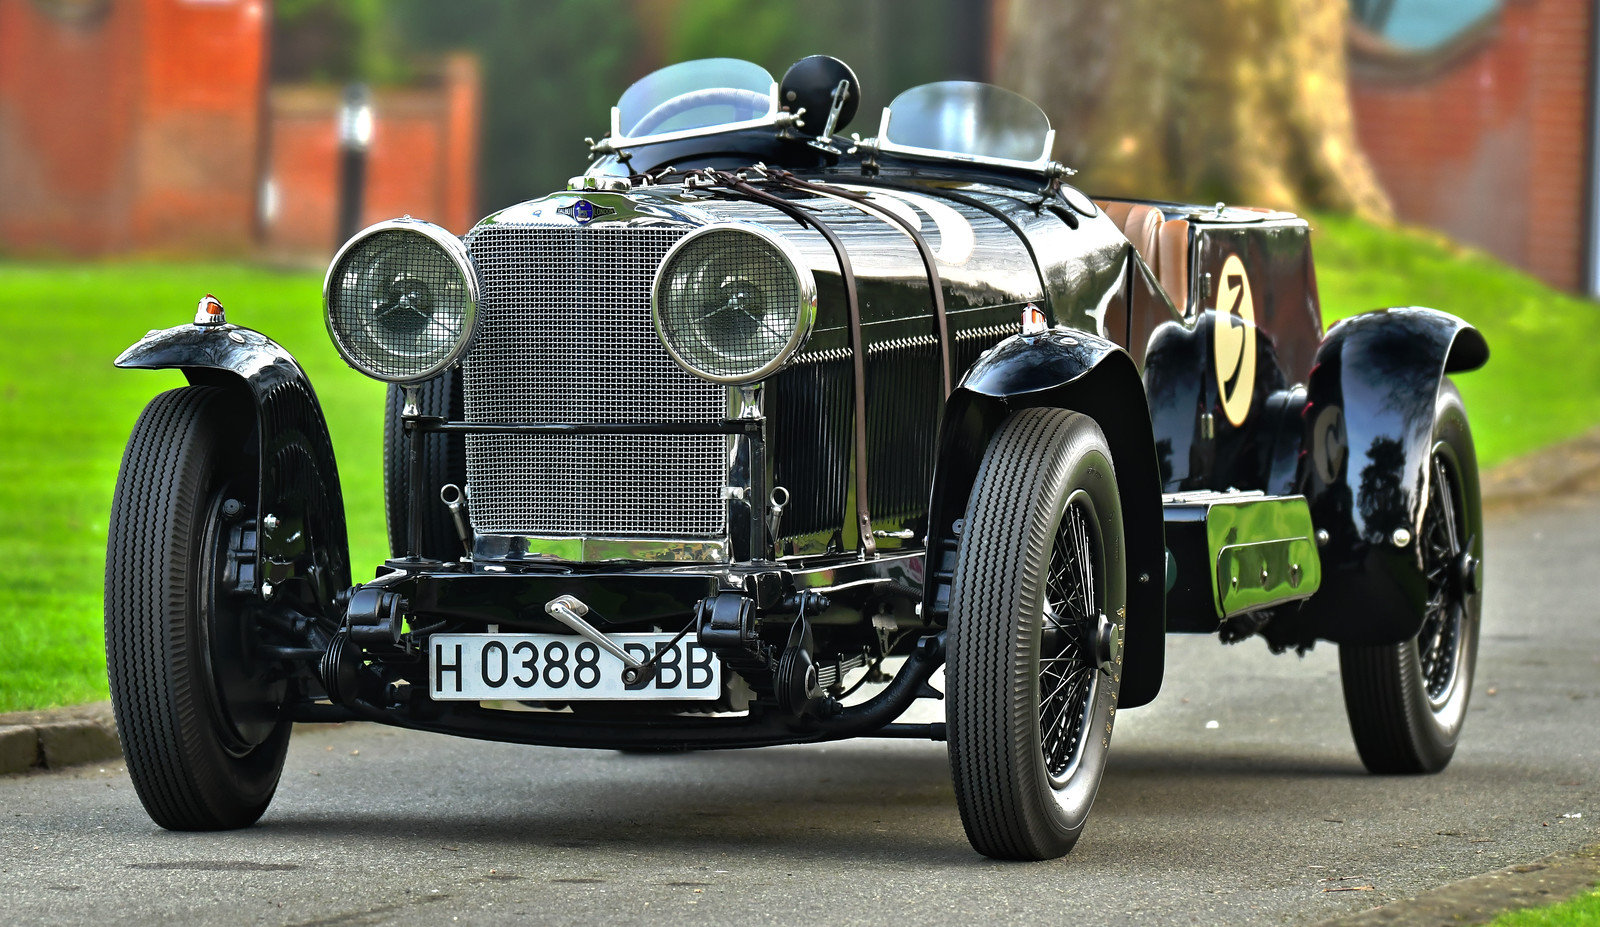 1933 Talbot 105 3 litre Brooklands special For Sale (picture 1 of 6)